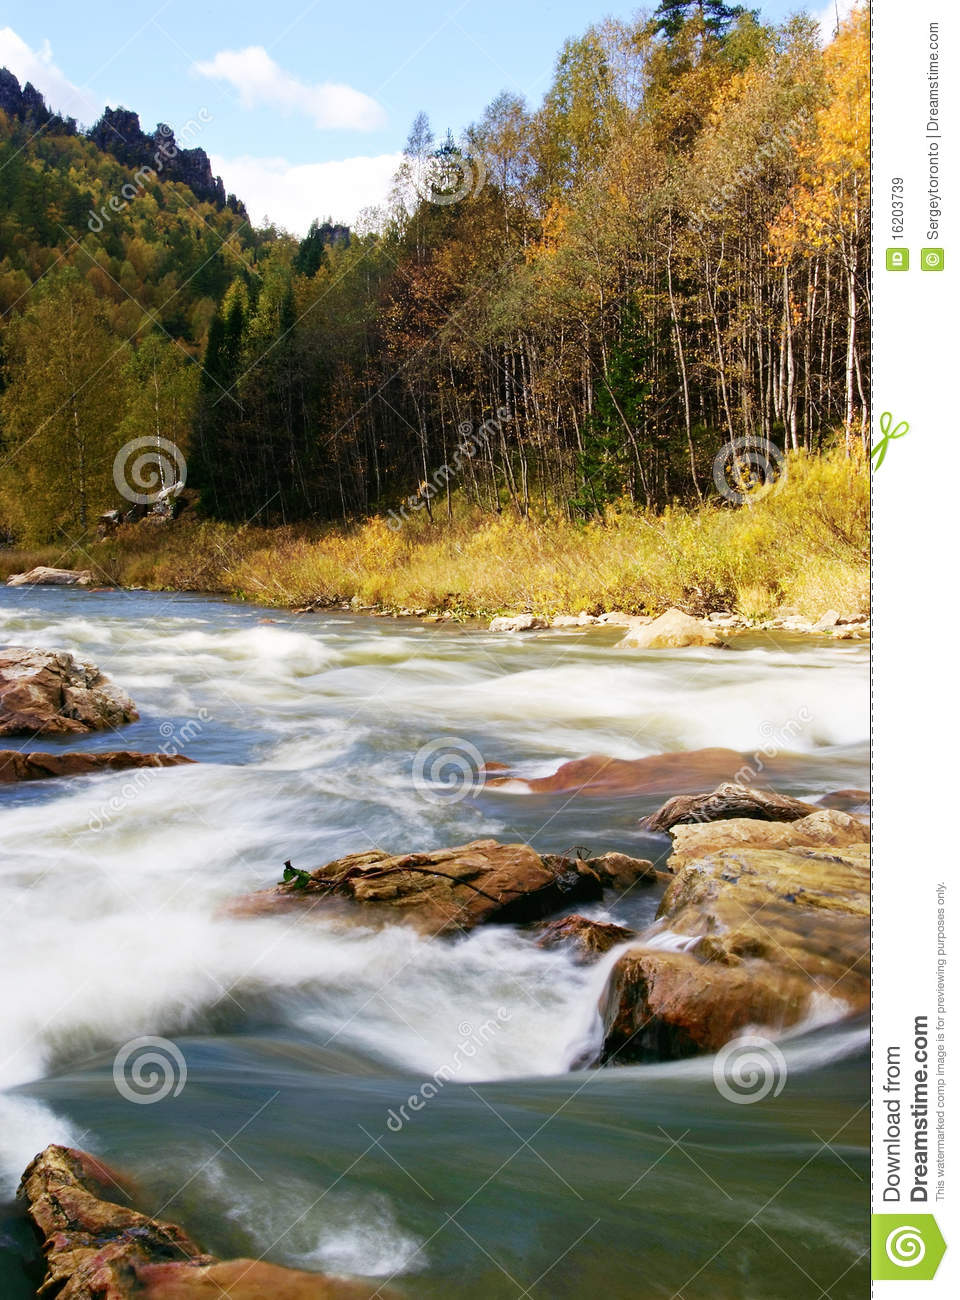 River Landscape In Autumn Time. Royalty Free Stock Images - Image